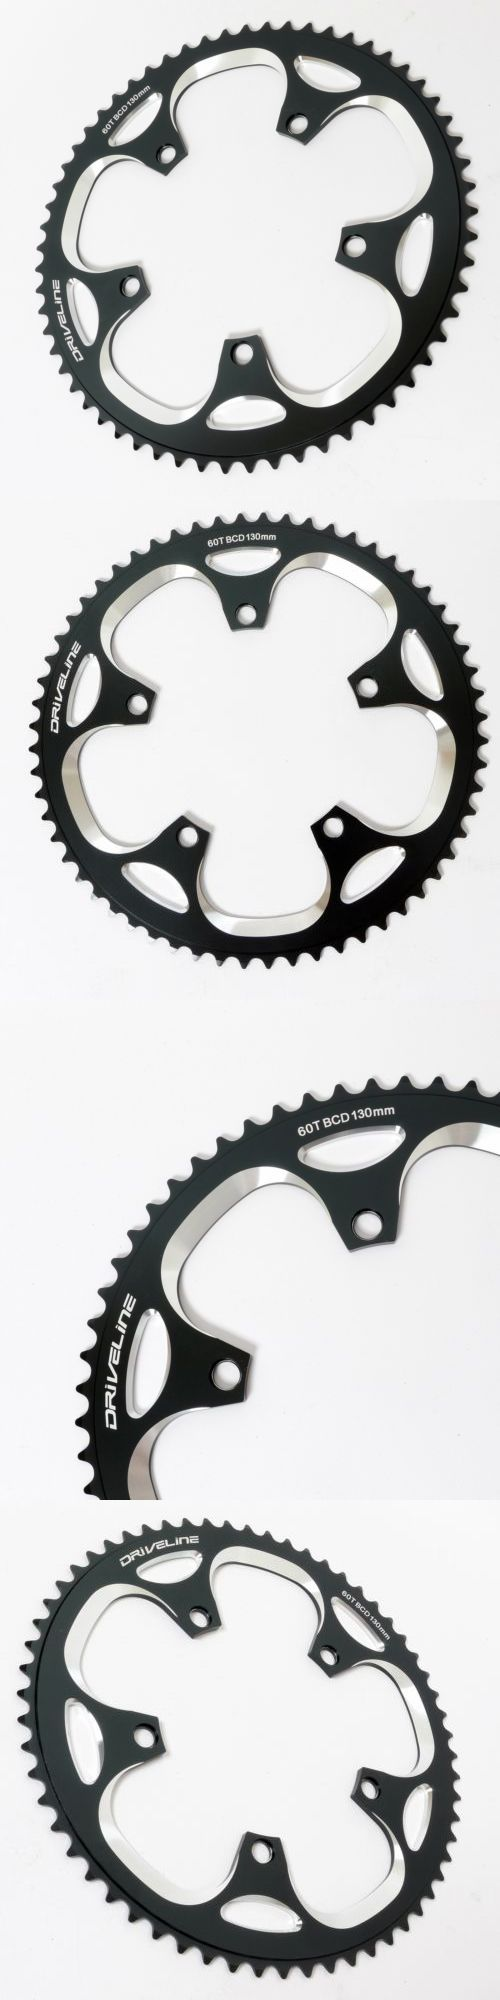 Chainrings and BMX Sprockets 177811: Mr_Ride Driveline Chainring 60T Bcd 130Mm Black For Folding Bike Birdy Dahon -> BUY IT NOW ONLY: $44.88 on eBay!